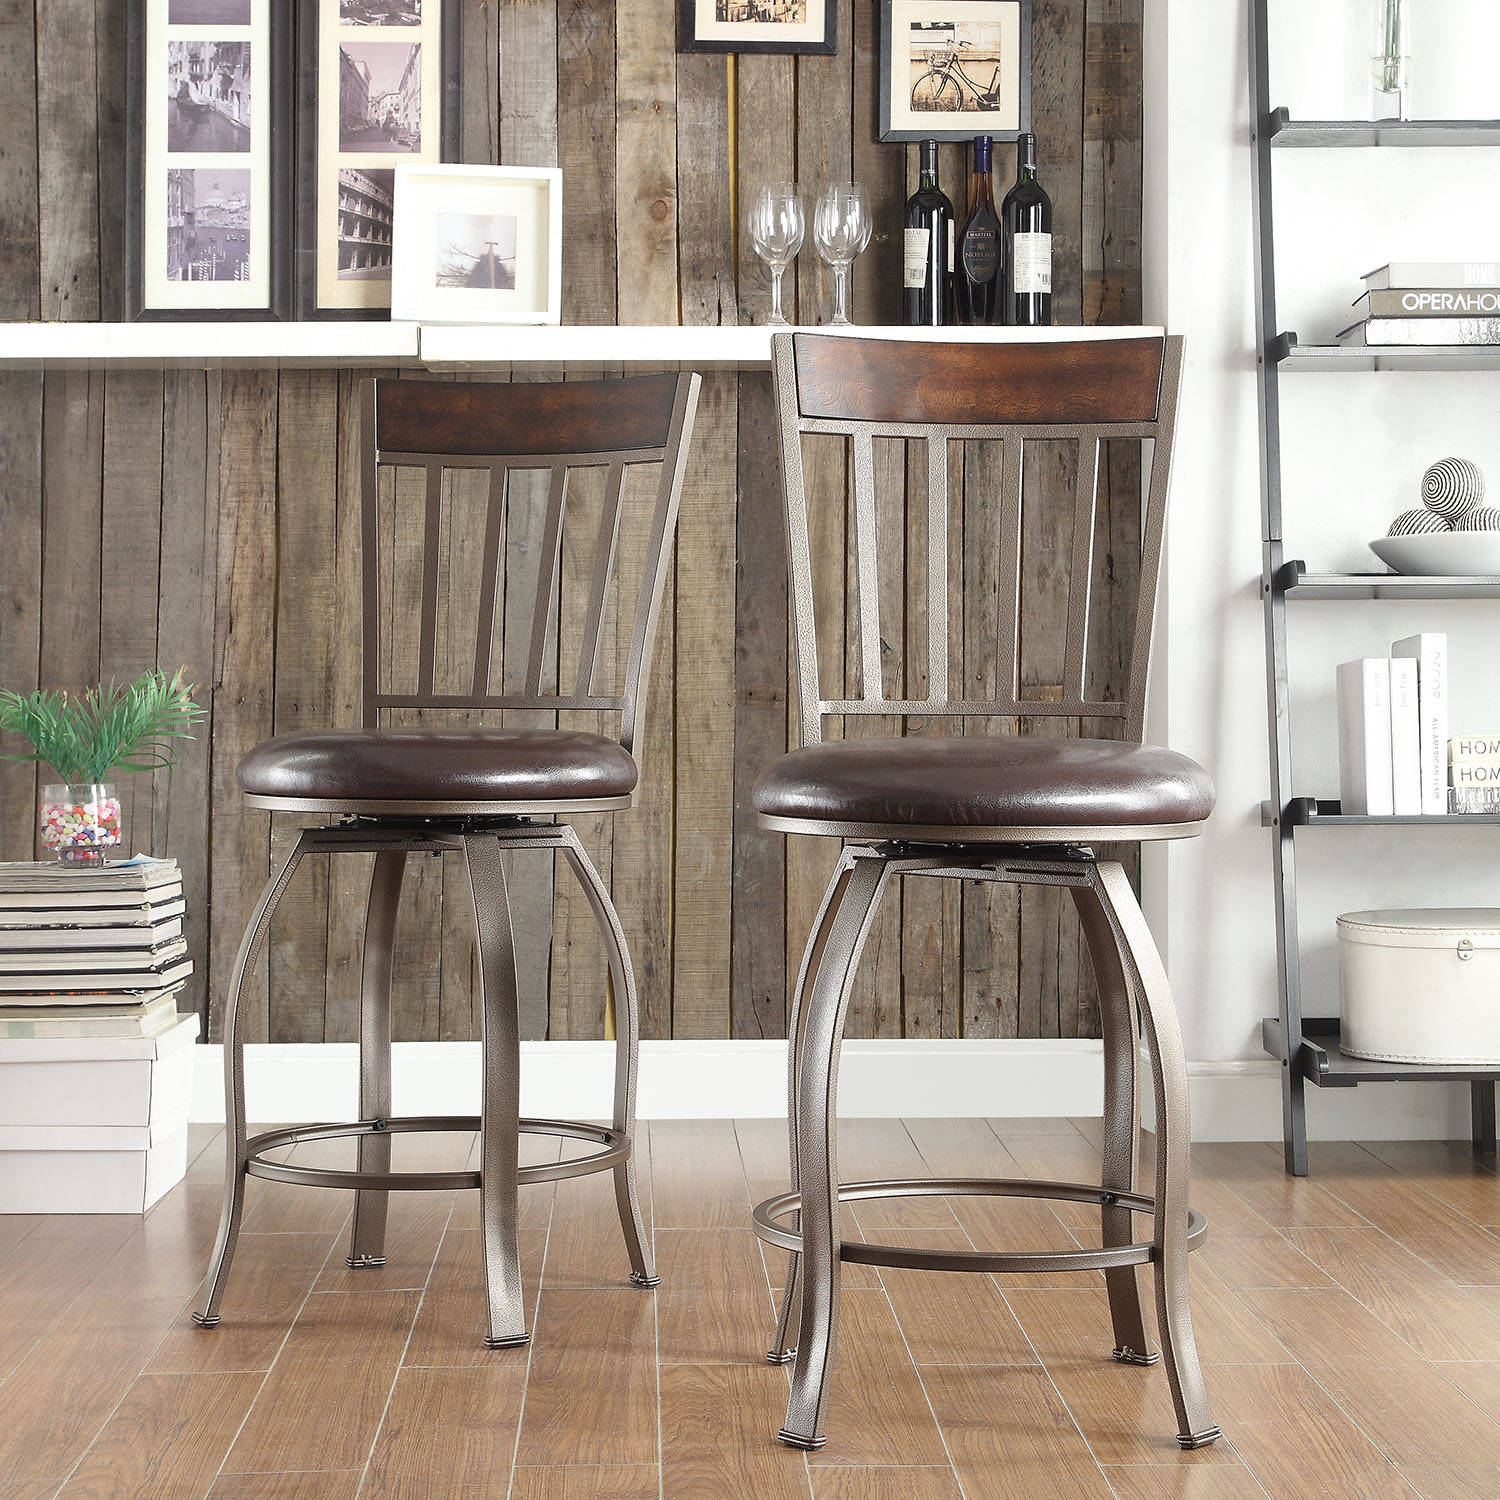 Weston Home Cadewyn Brown Faux Leather Counter Height Swivel Chair, Set Of 2